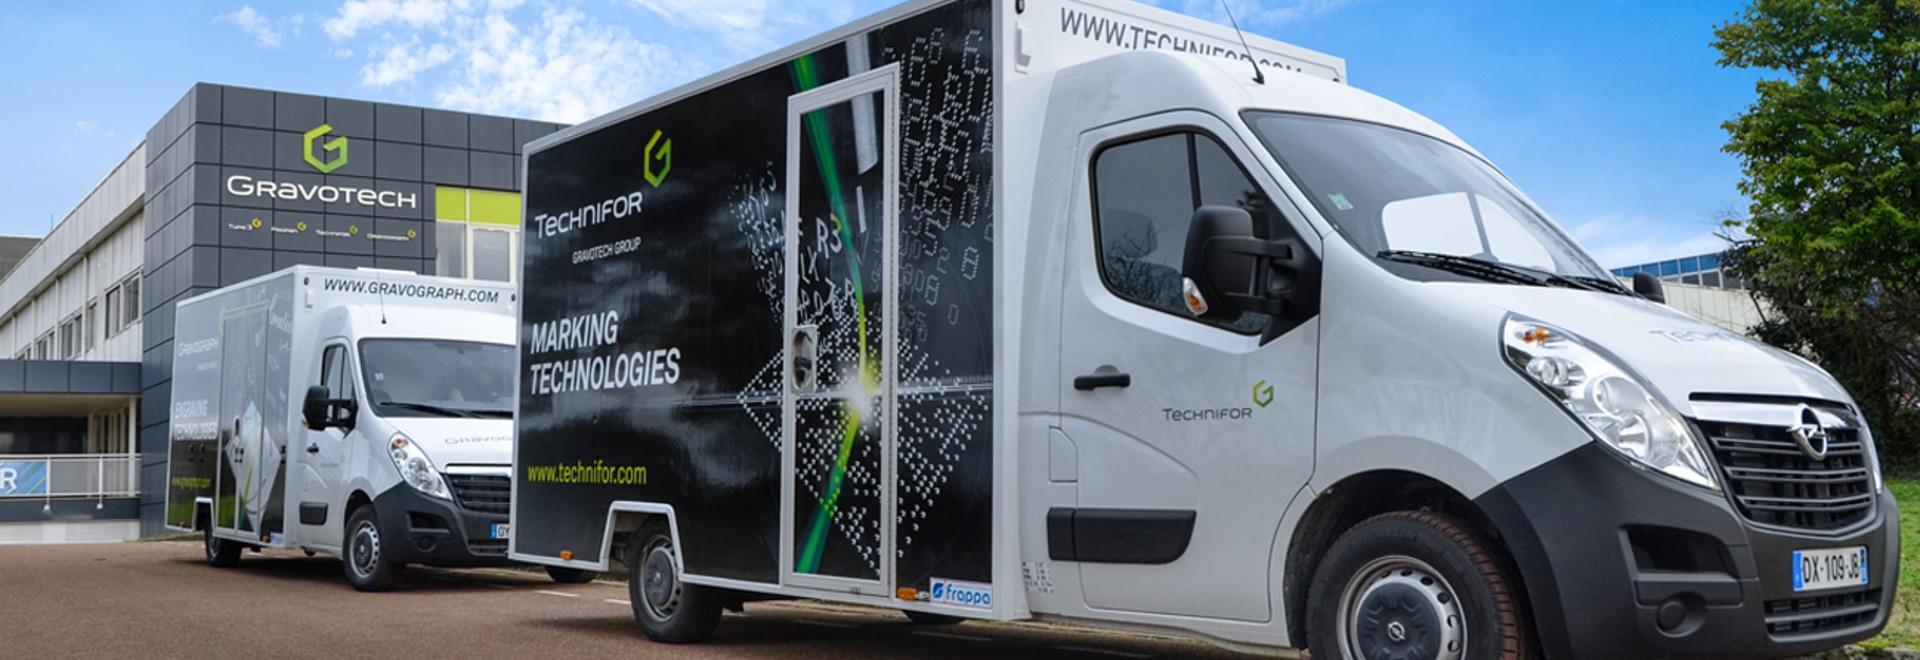 Technifor are on the road